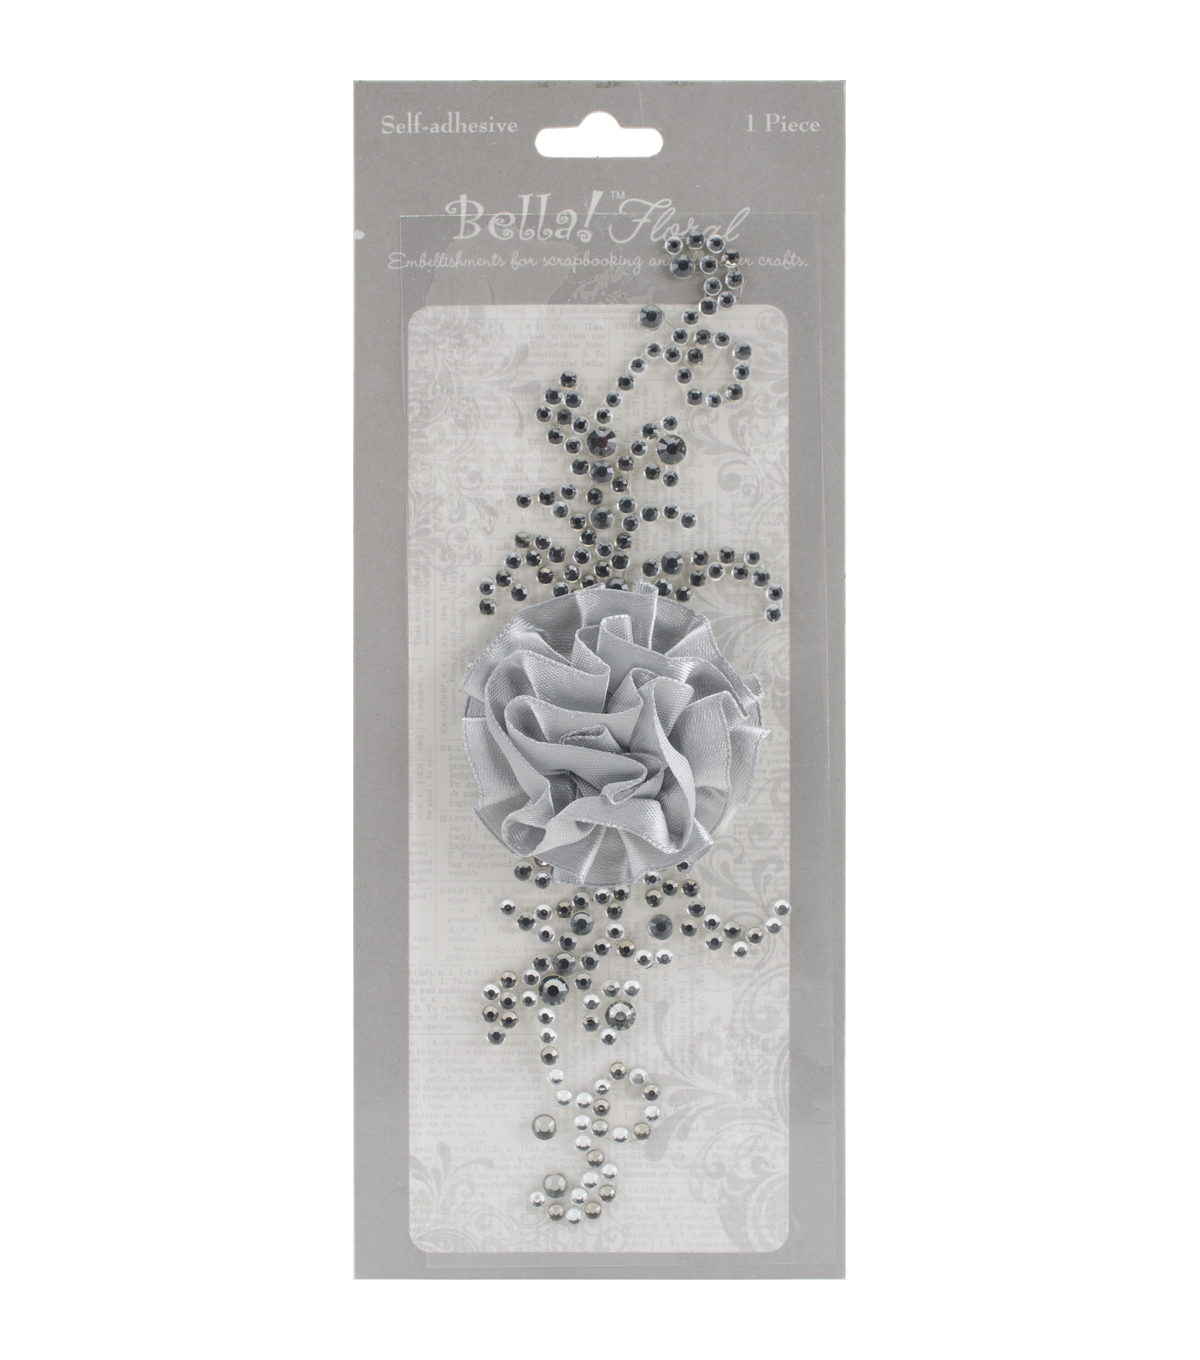 Ruby Rock It Bella! Bling & Fabric Floral Trim Embellishments, Silver